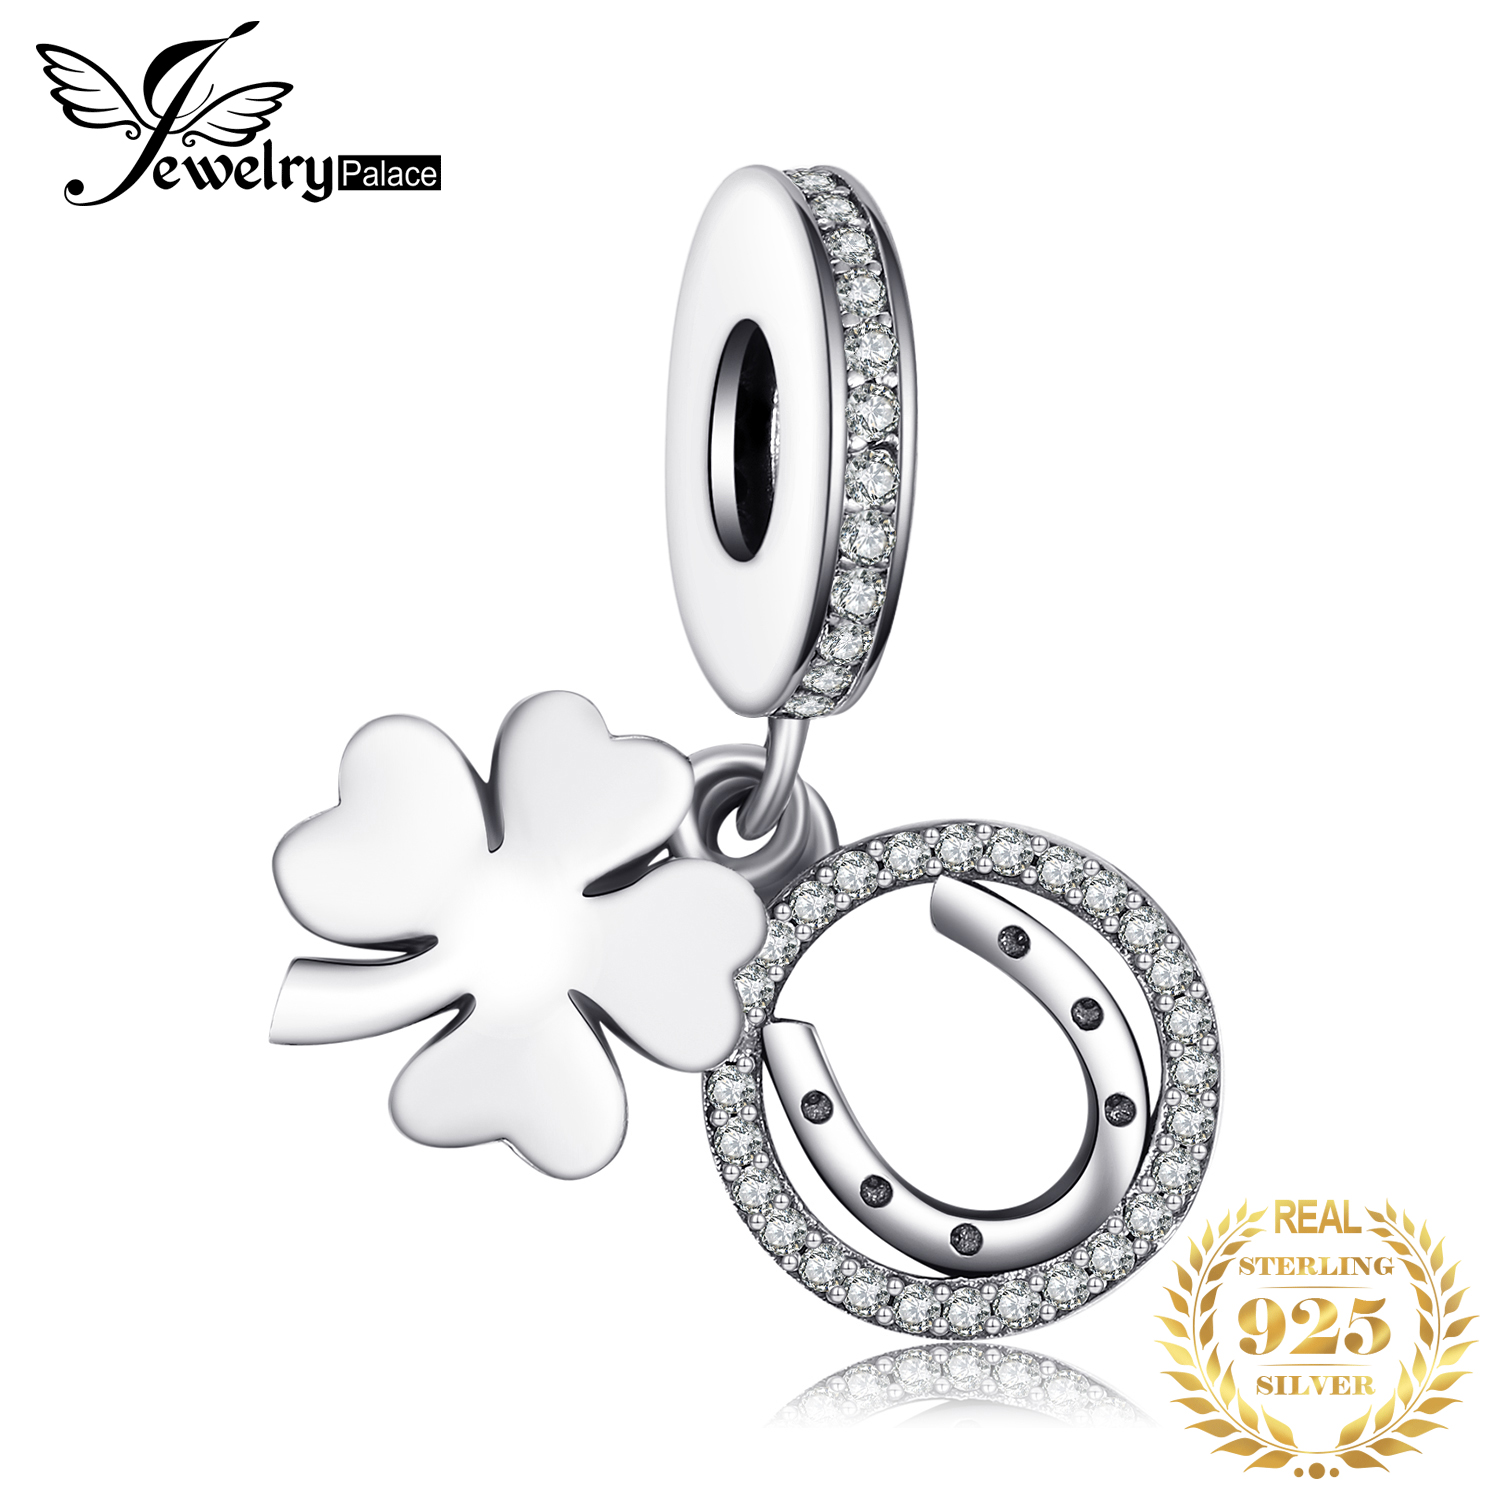 JewelryPalace Leaf Clover 925 Sterling Silver Beads Charms Silver 925 Original For Bracelet Silver 925 original JewelryPalace Leaf Clover 925 Sterling Silver Beads Charms Silver 925 Original For Bracelet Silver 925 original Jewelry Making